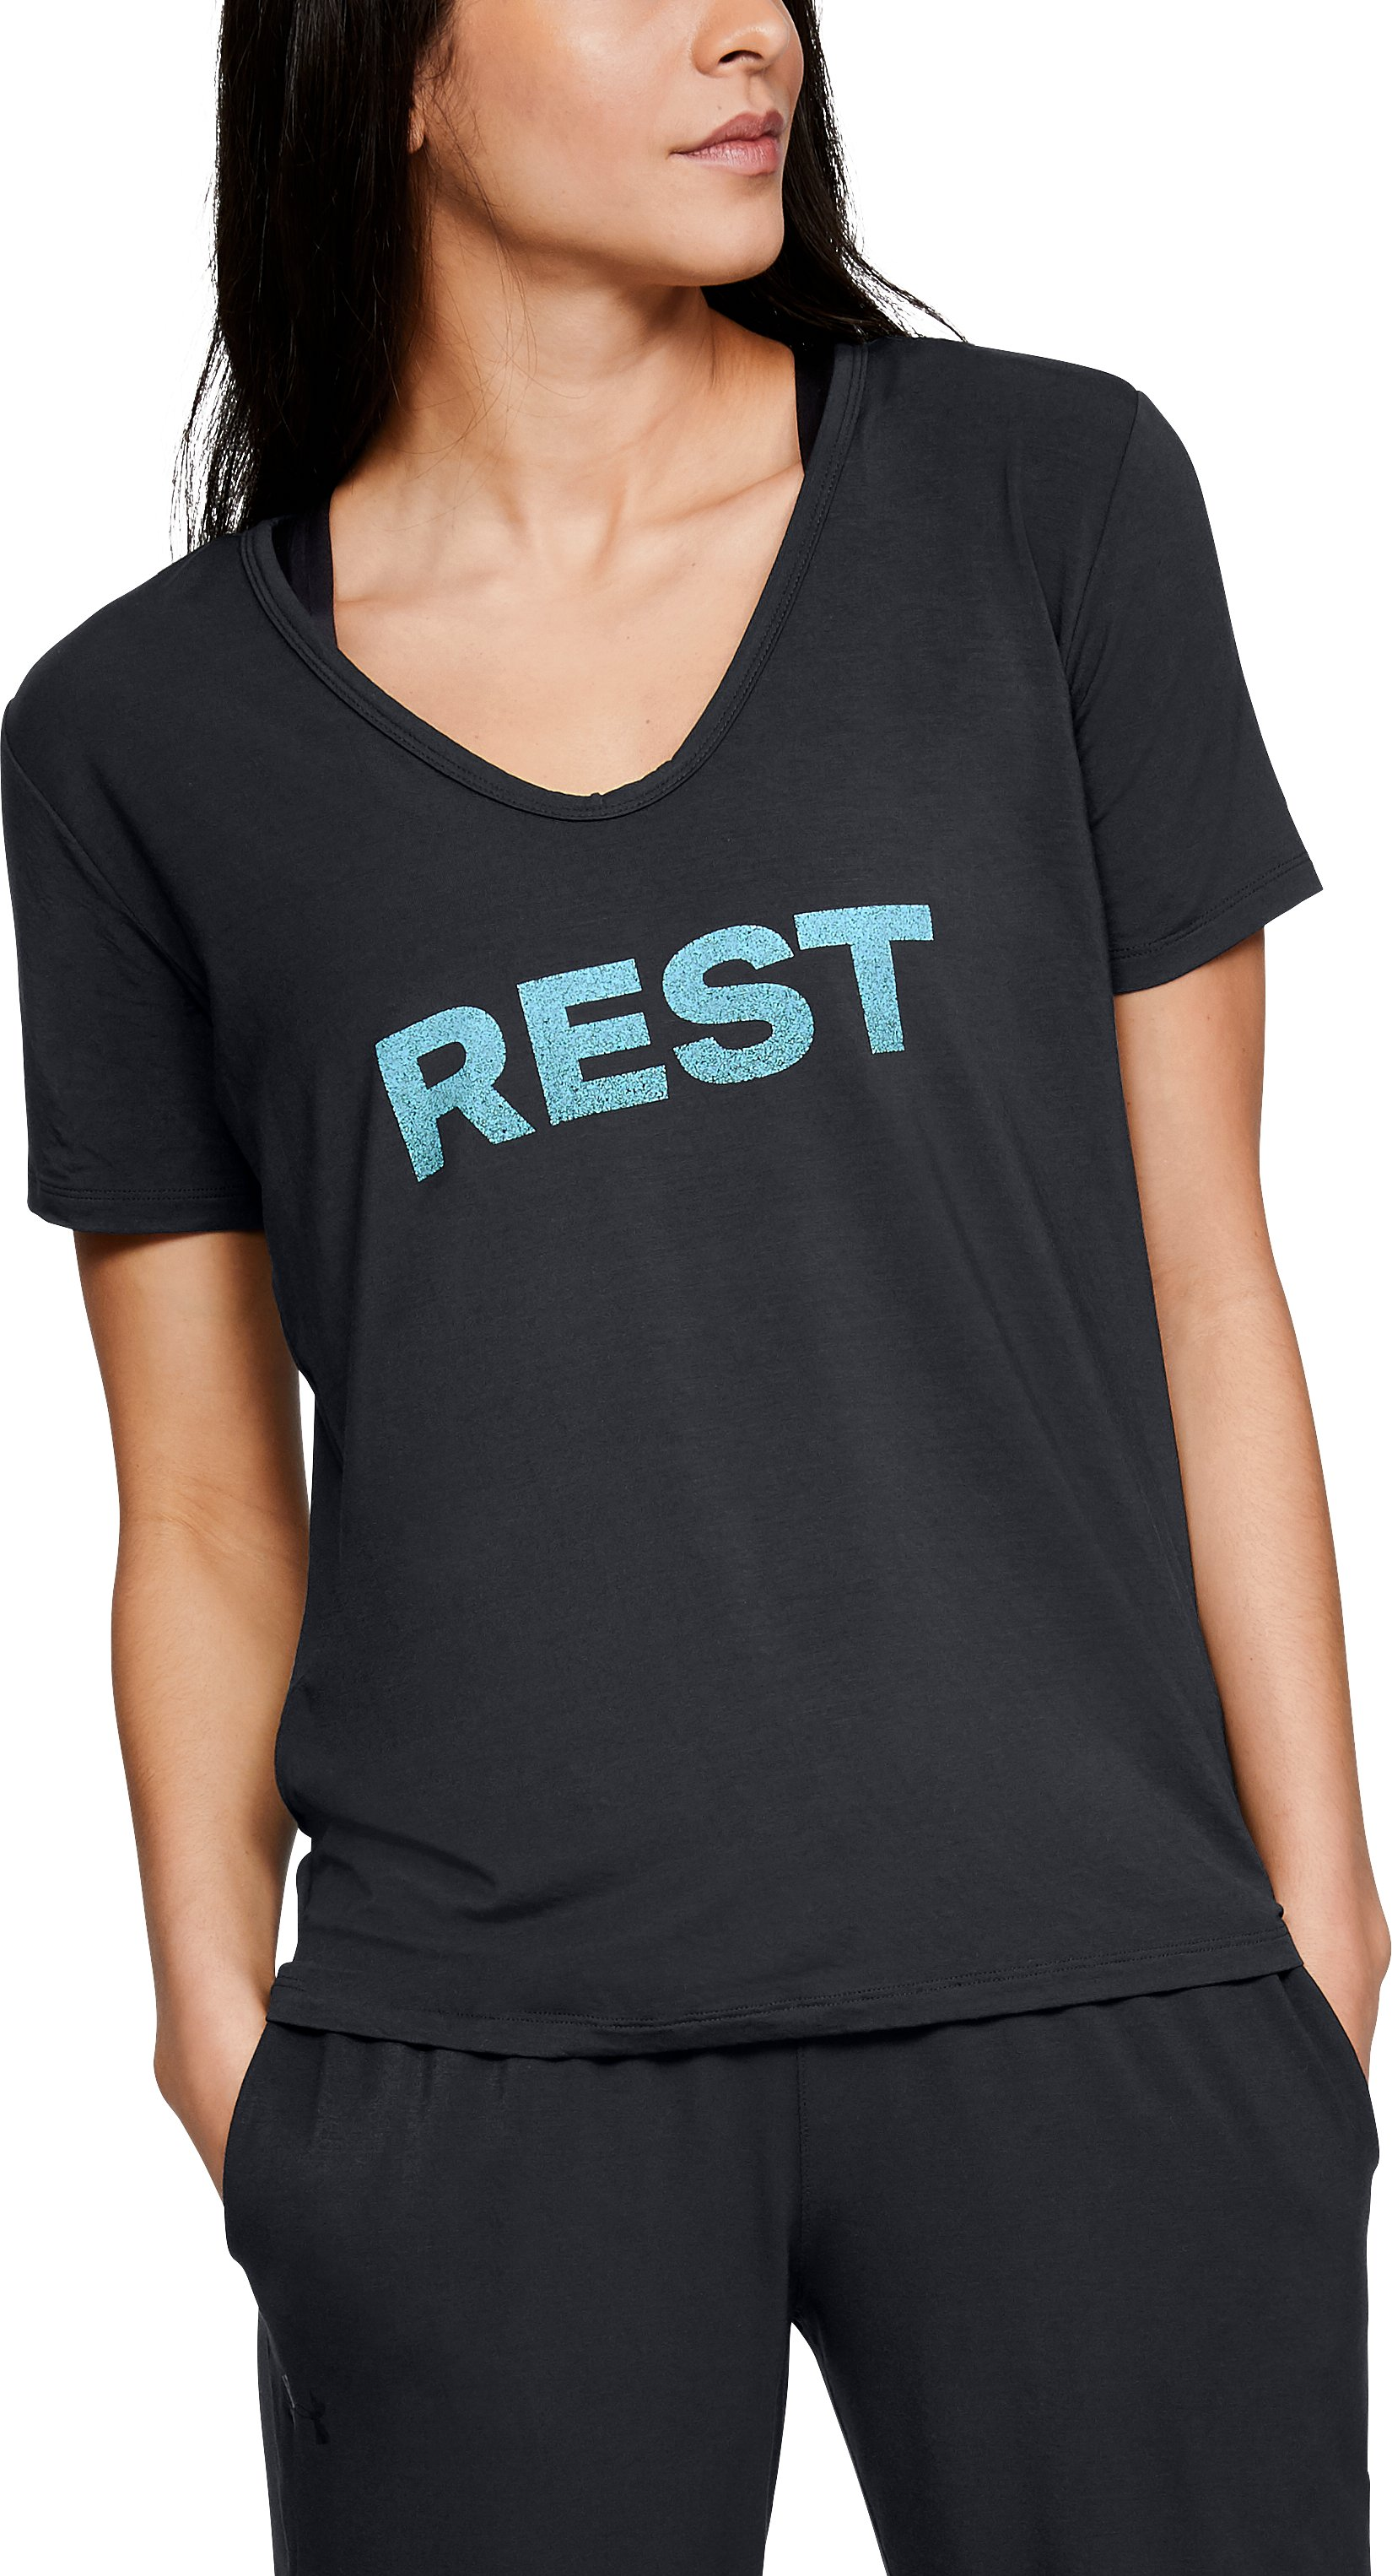 Women's Athlete Recovery Ultra Comfort Sleepwear REST Graphic T-Shirt, Black , zoomed